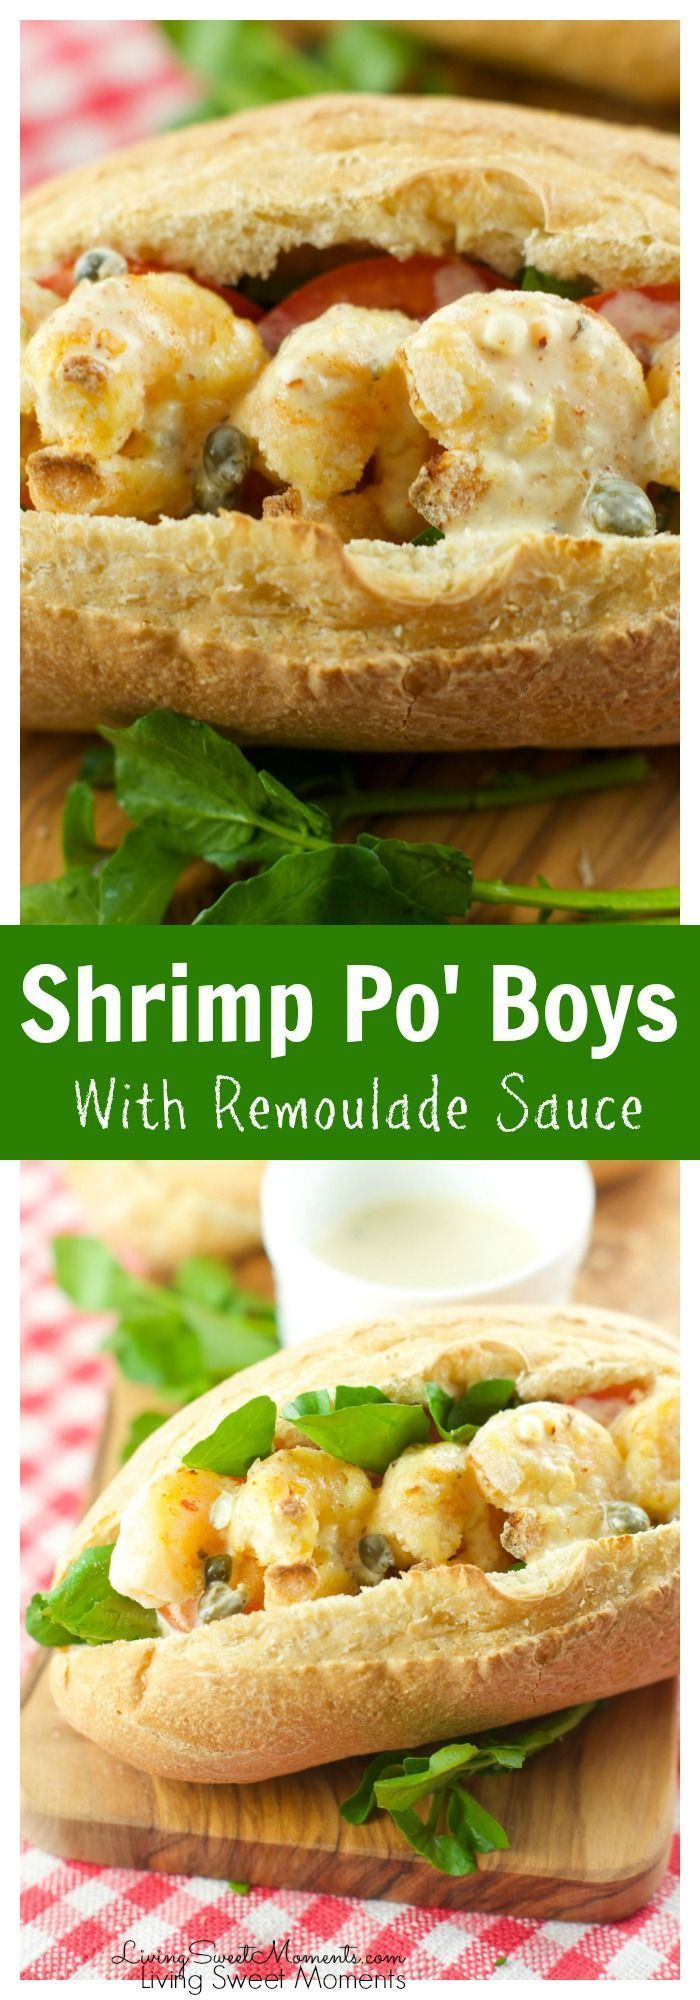 Shrimp Po'boys - served with a delicious creole Remoulade sauce. Shrimp is battered in cornmeal and oven fried to perfection. Perfect for parties or dinner More shrimp recipes at http://livingsweetmoments.com via @Livingsmoments